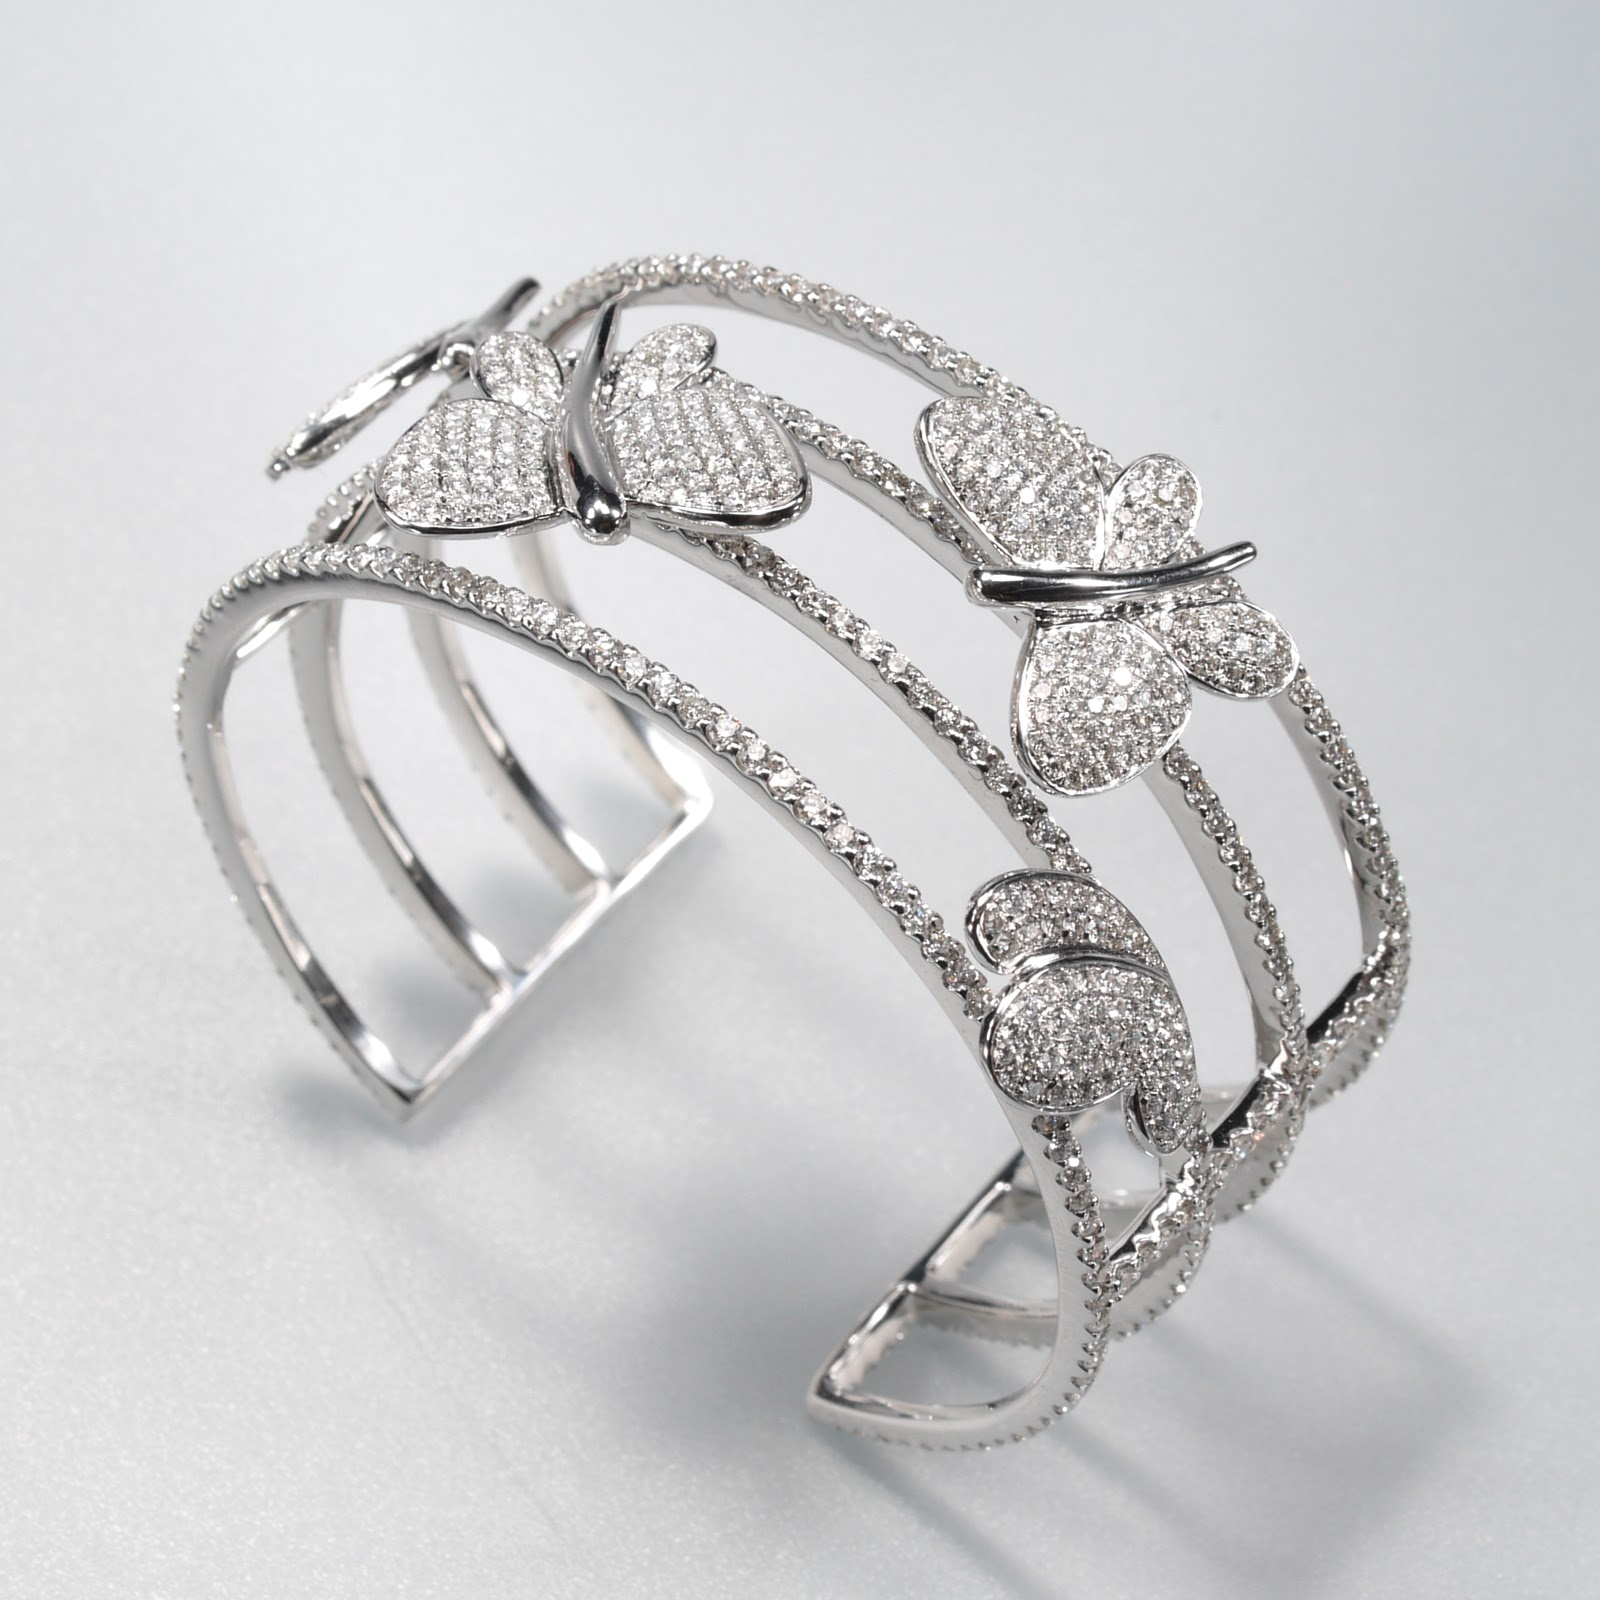 4c6a79488 An 18k white gold and diamond bangle from Winstar Jewelery Manufacturer  Ltd., Hong Kong.